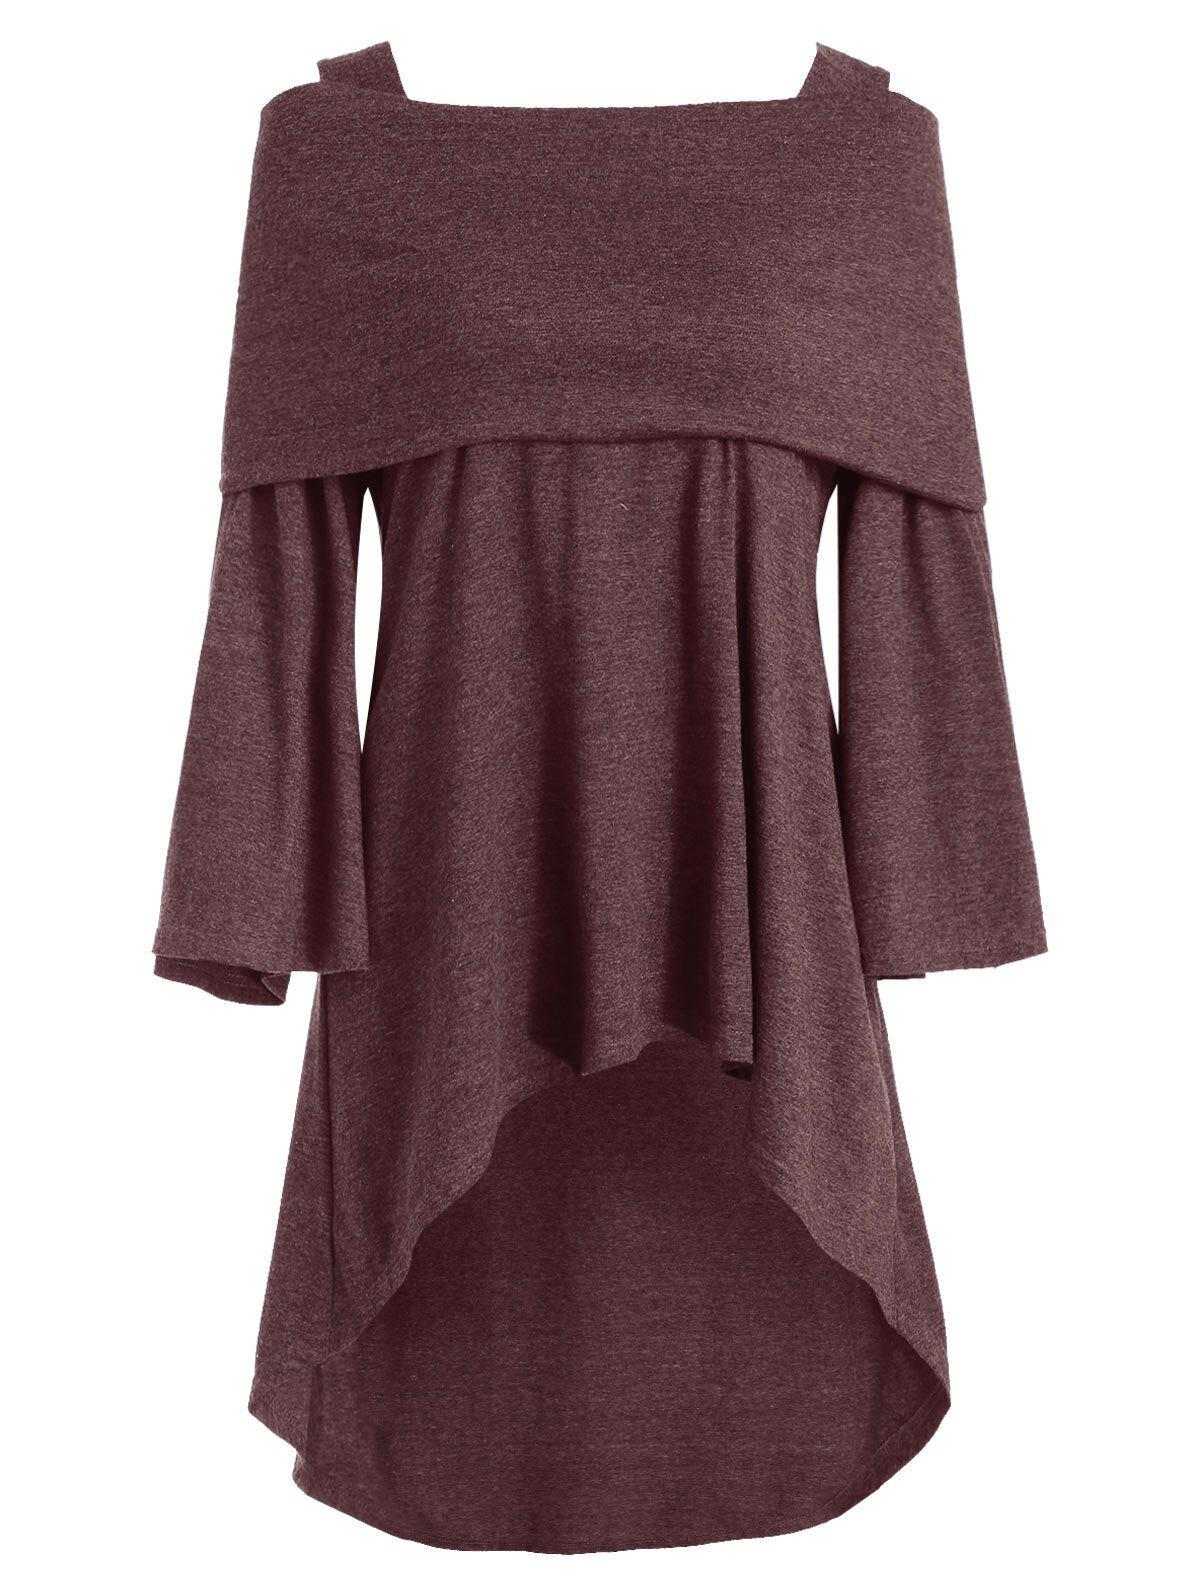 Plus Size Foldover Bell Sleeve High Low T Shirt - RED WINE 3X